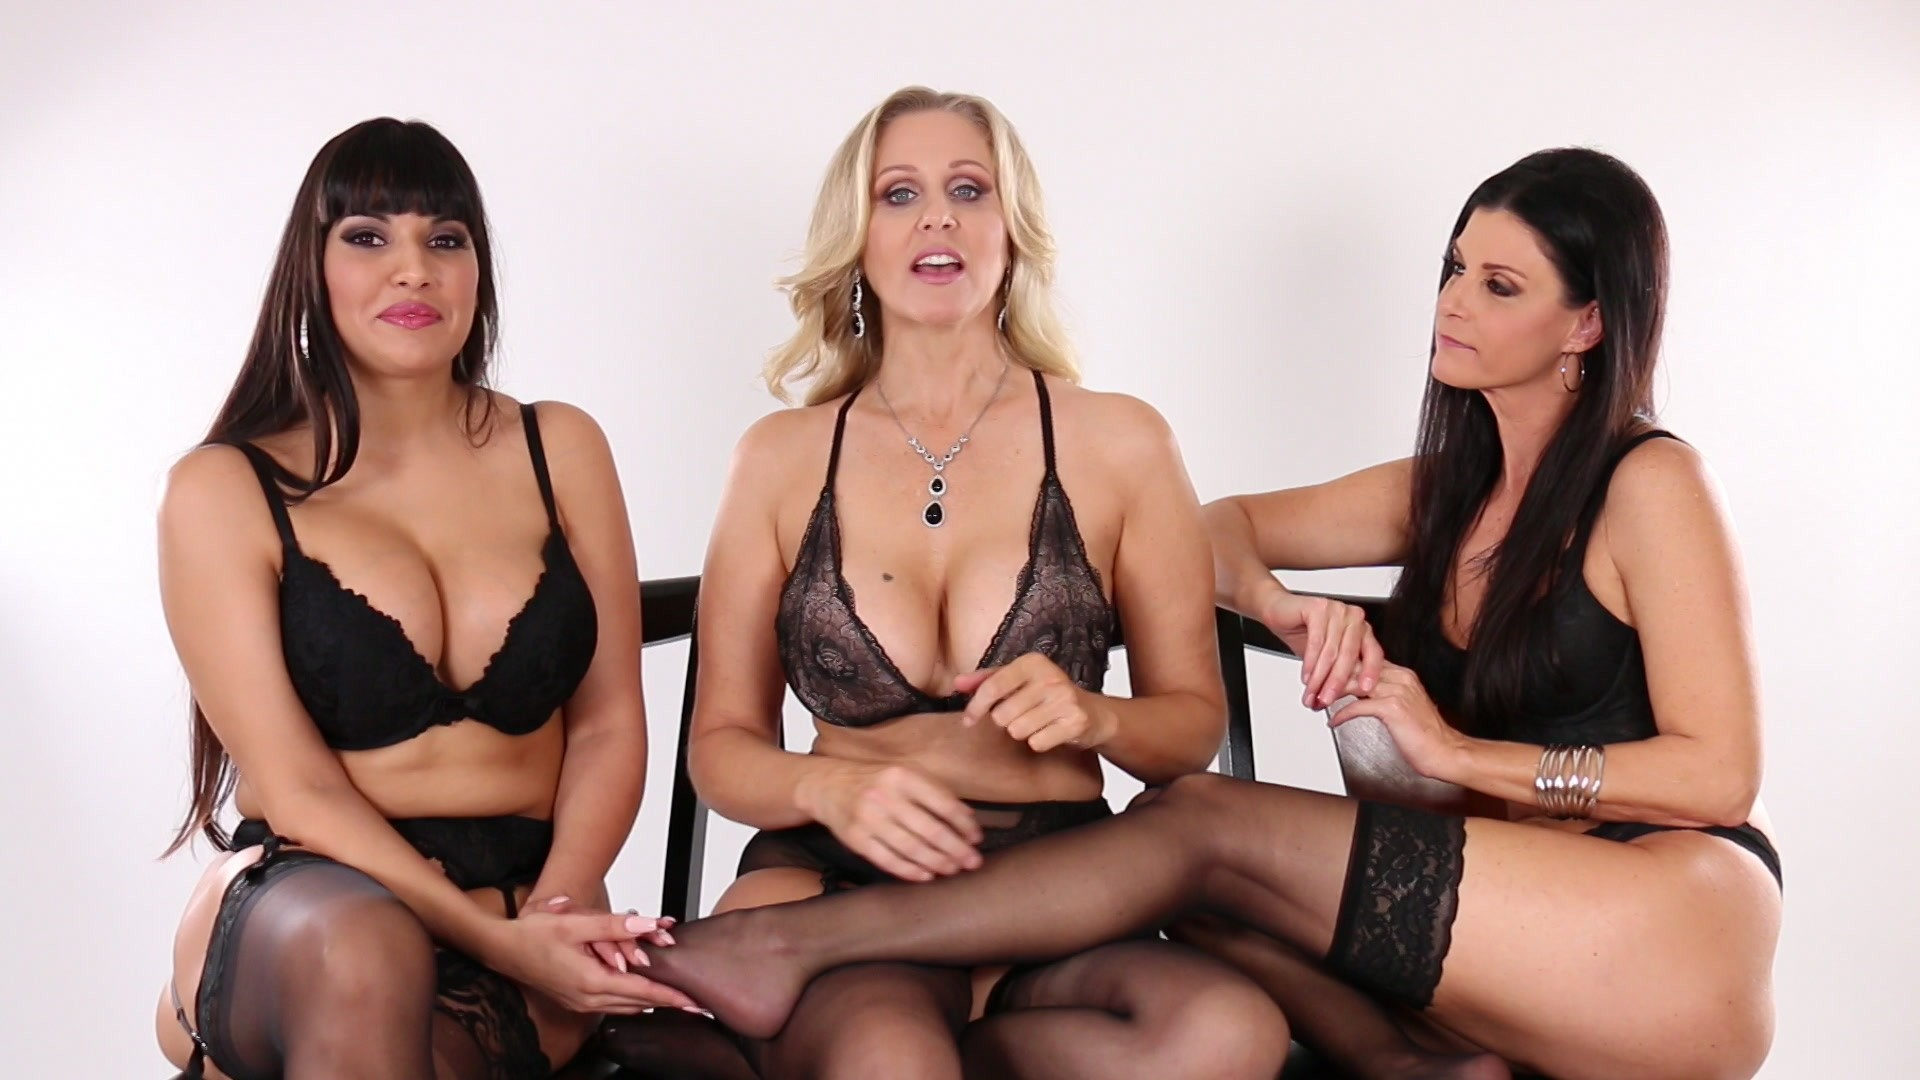 Scene with Julia Ann, India Summer and Mercedes Carrera - image 5 out of 20